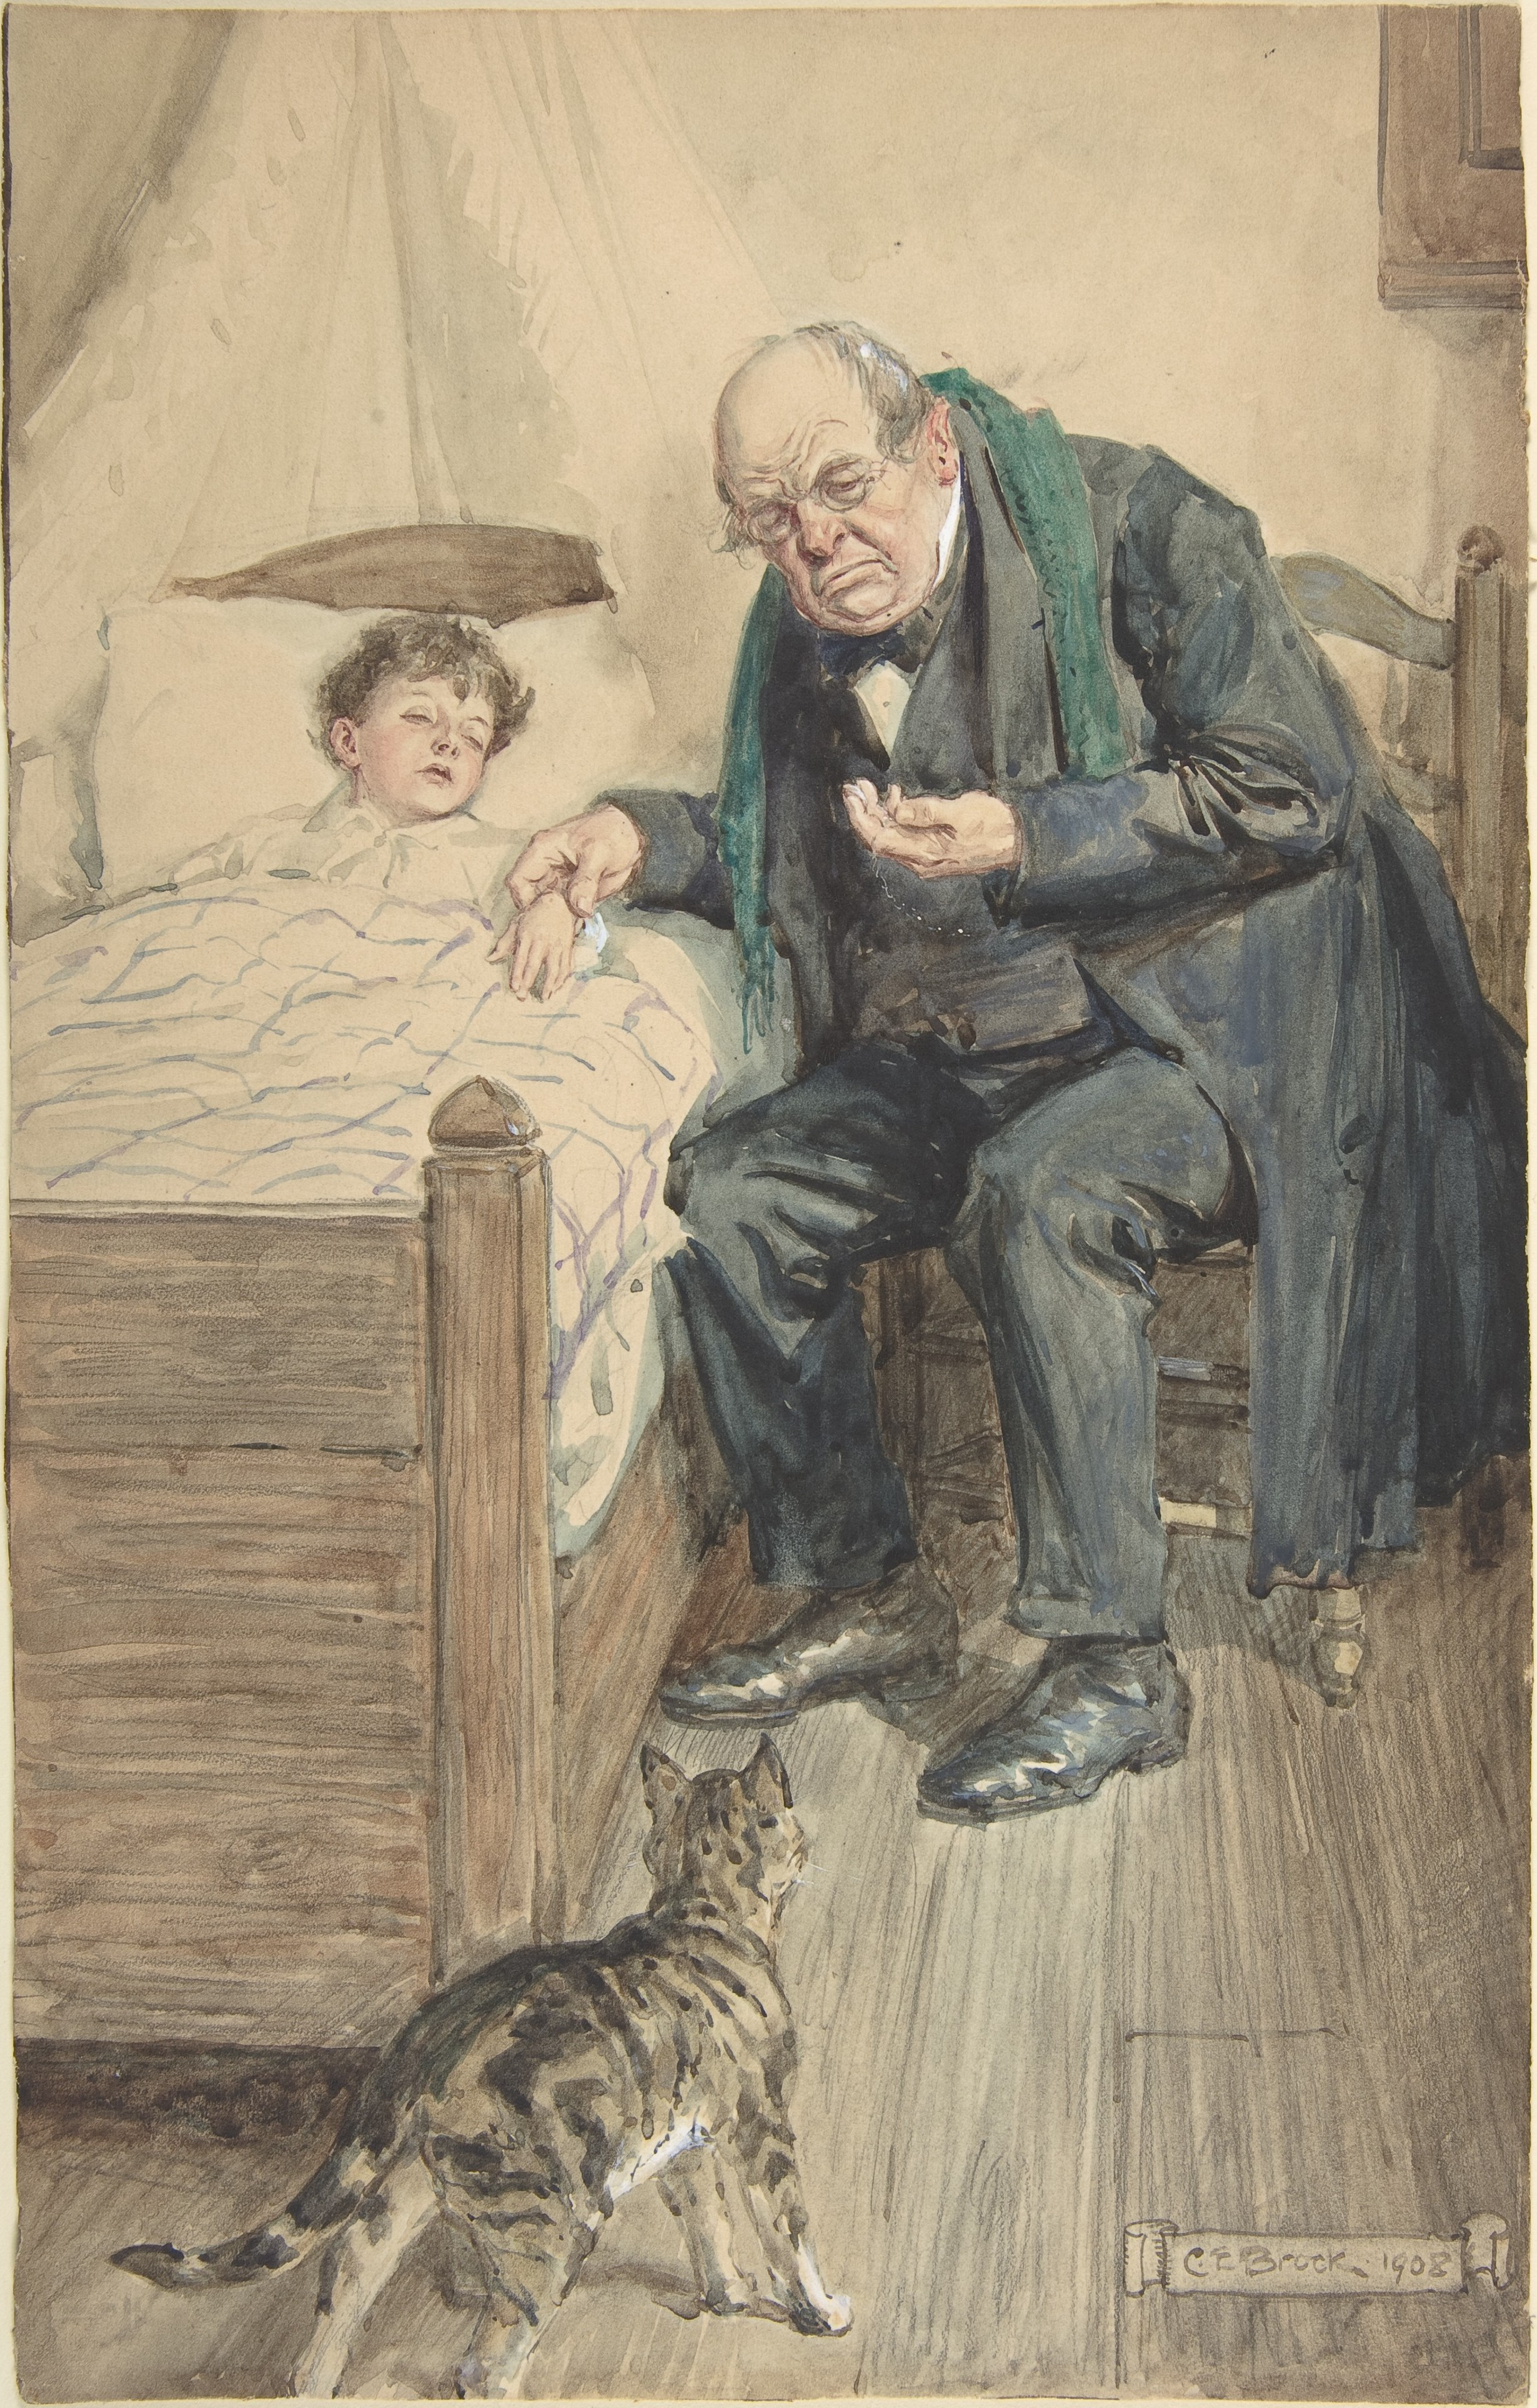 Illustration for the book, Little Peter, A Christmas Morality Charles Edmund Brock (1908)